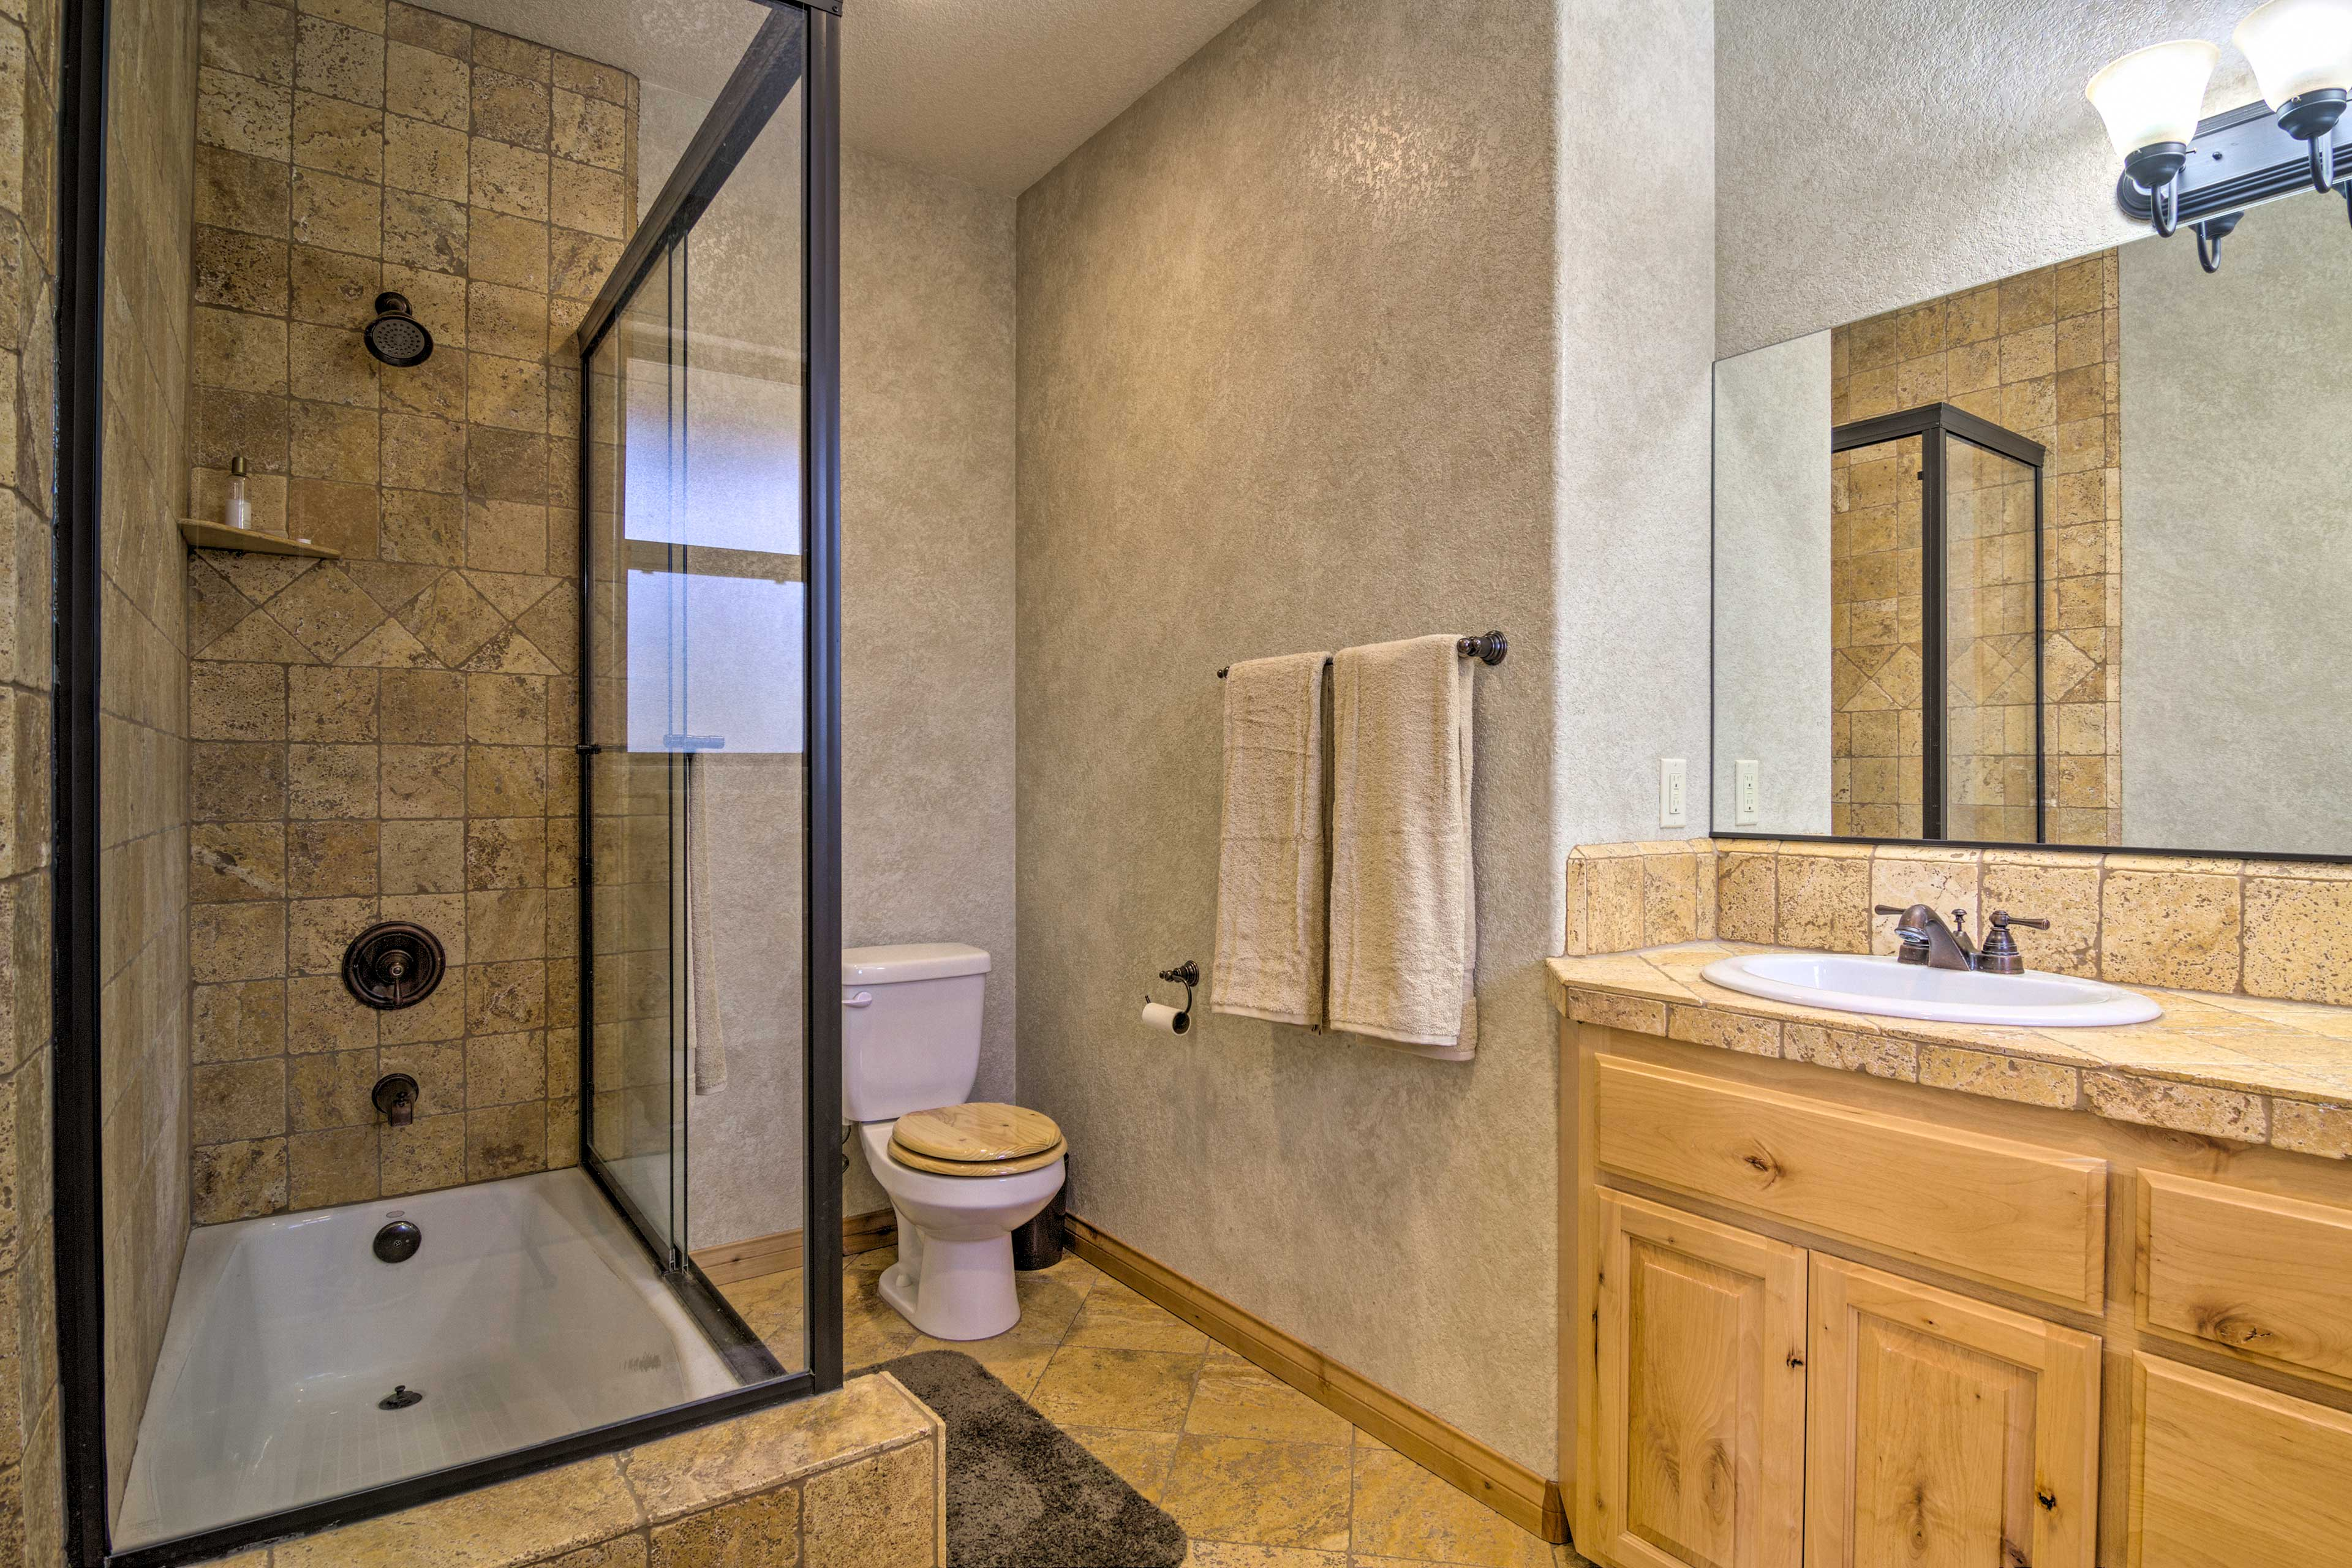 After a day outdoors, shower off in this bathroom.